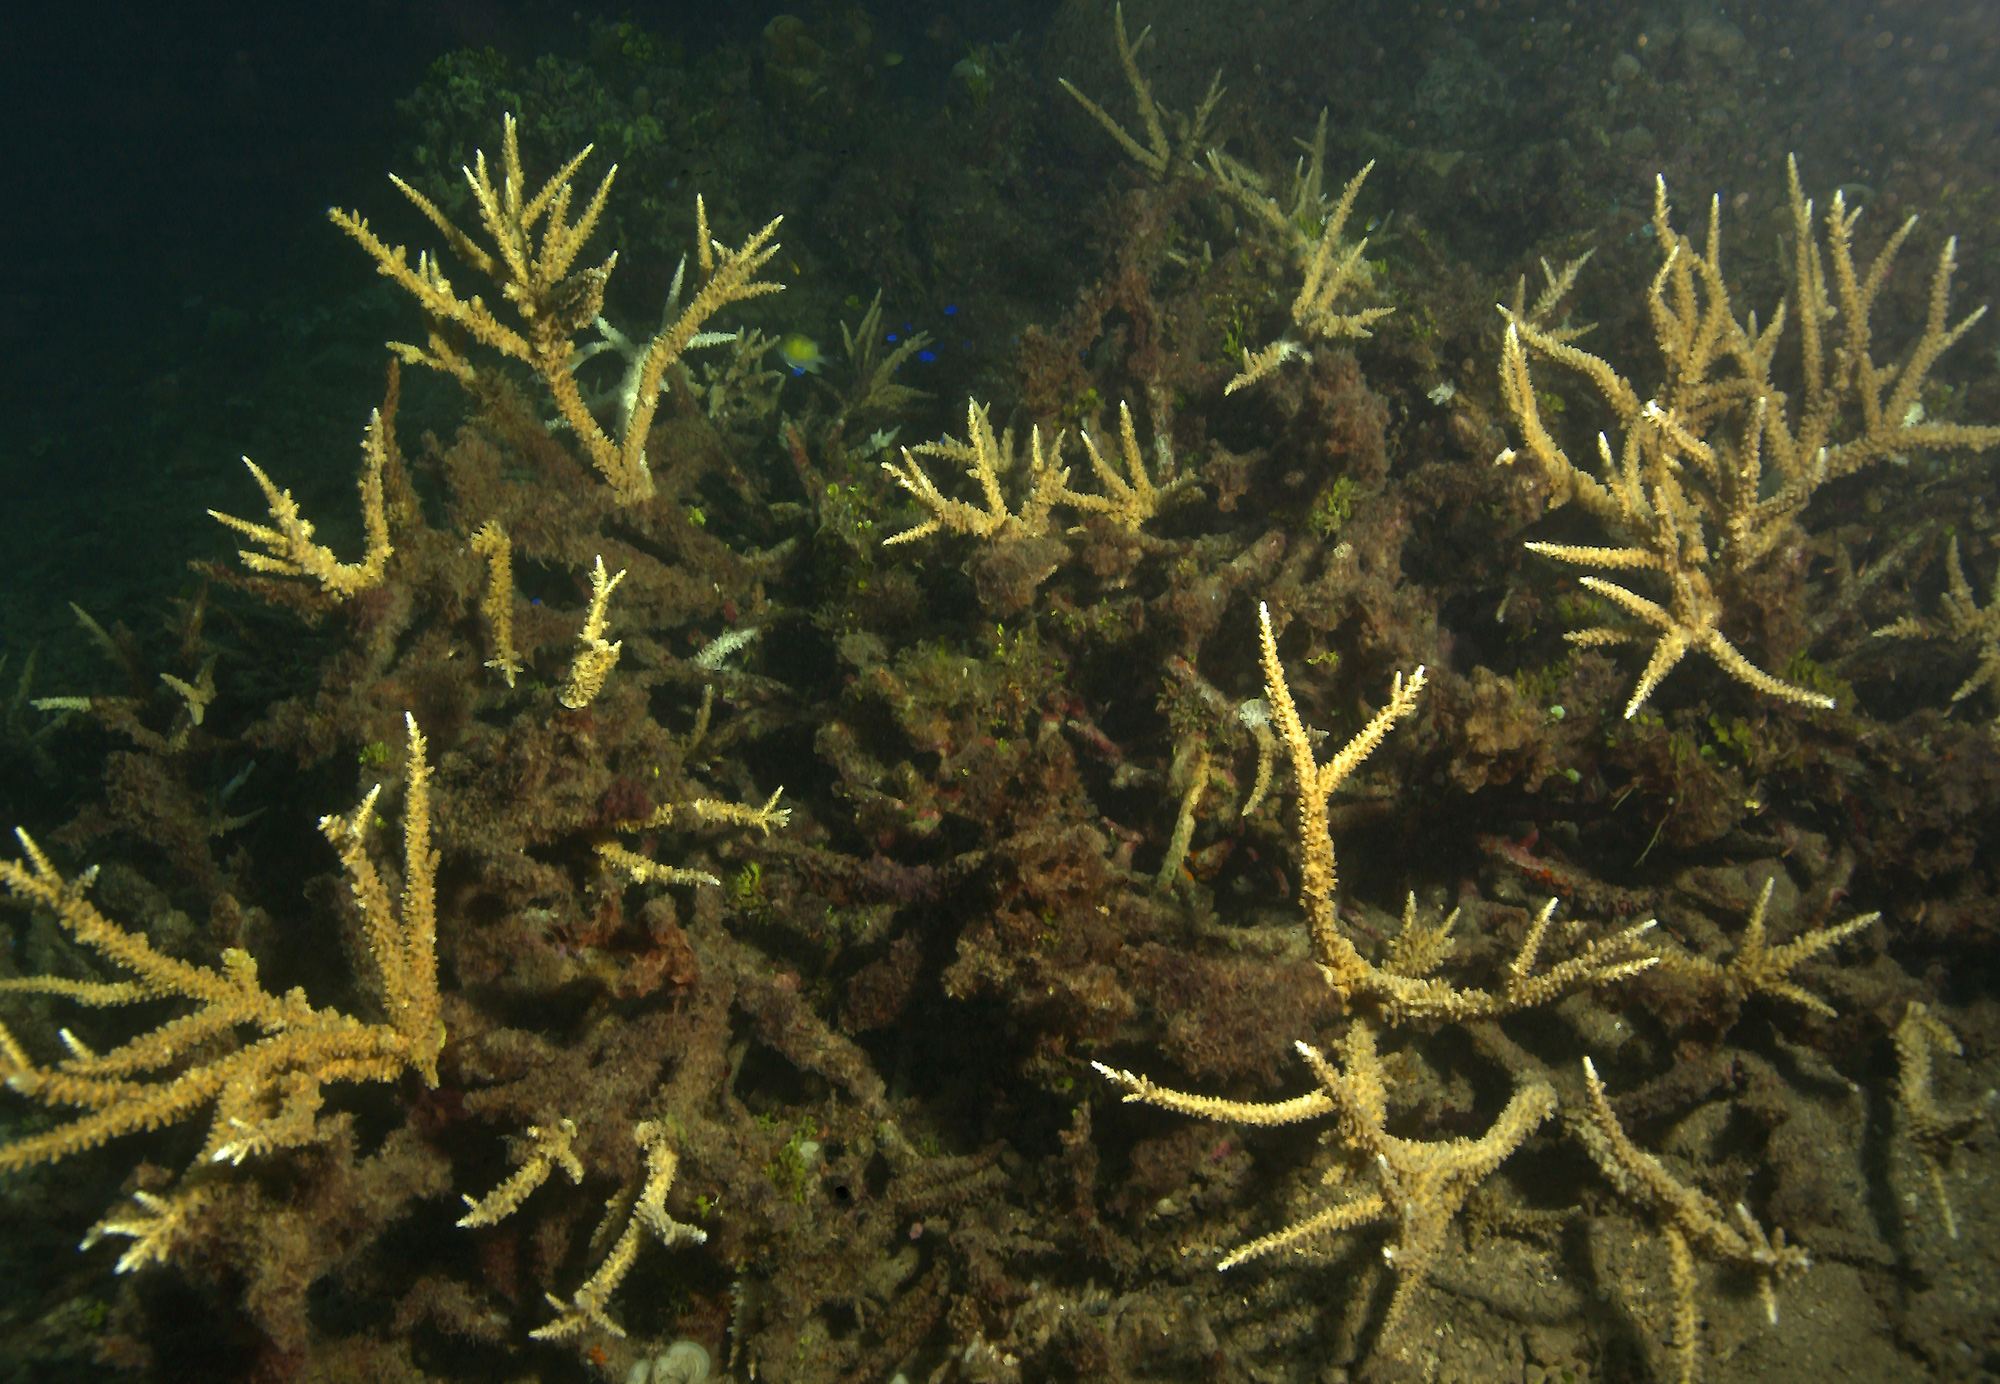 These corals are dead—smothered in sediments and overgrown with algae.<div class='credit'><strong>Credit:</strong> These corals are dead—smothered in sediments and overgrown with algae.</div>